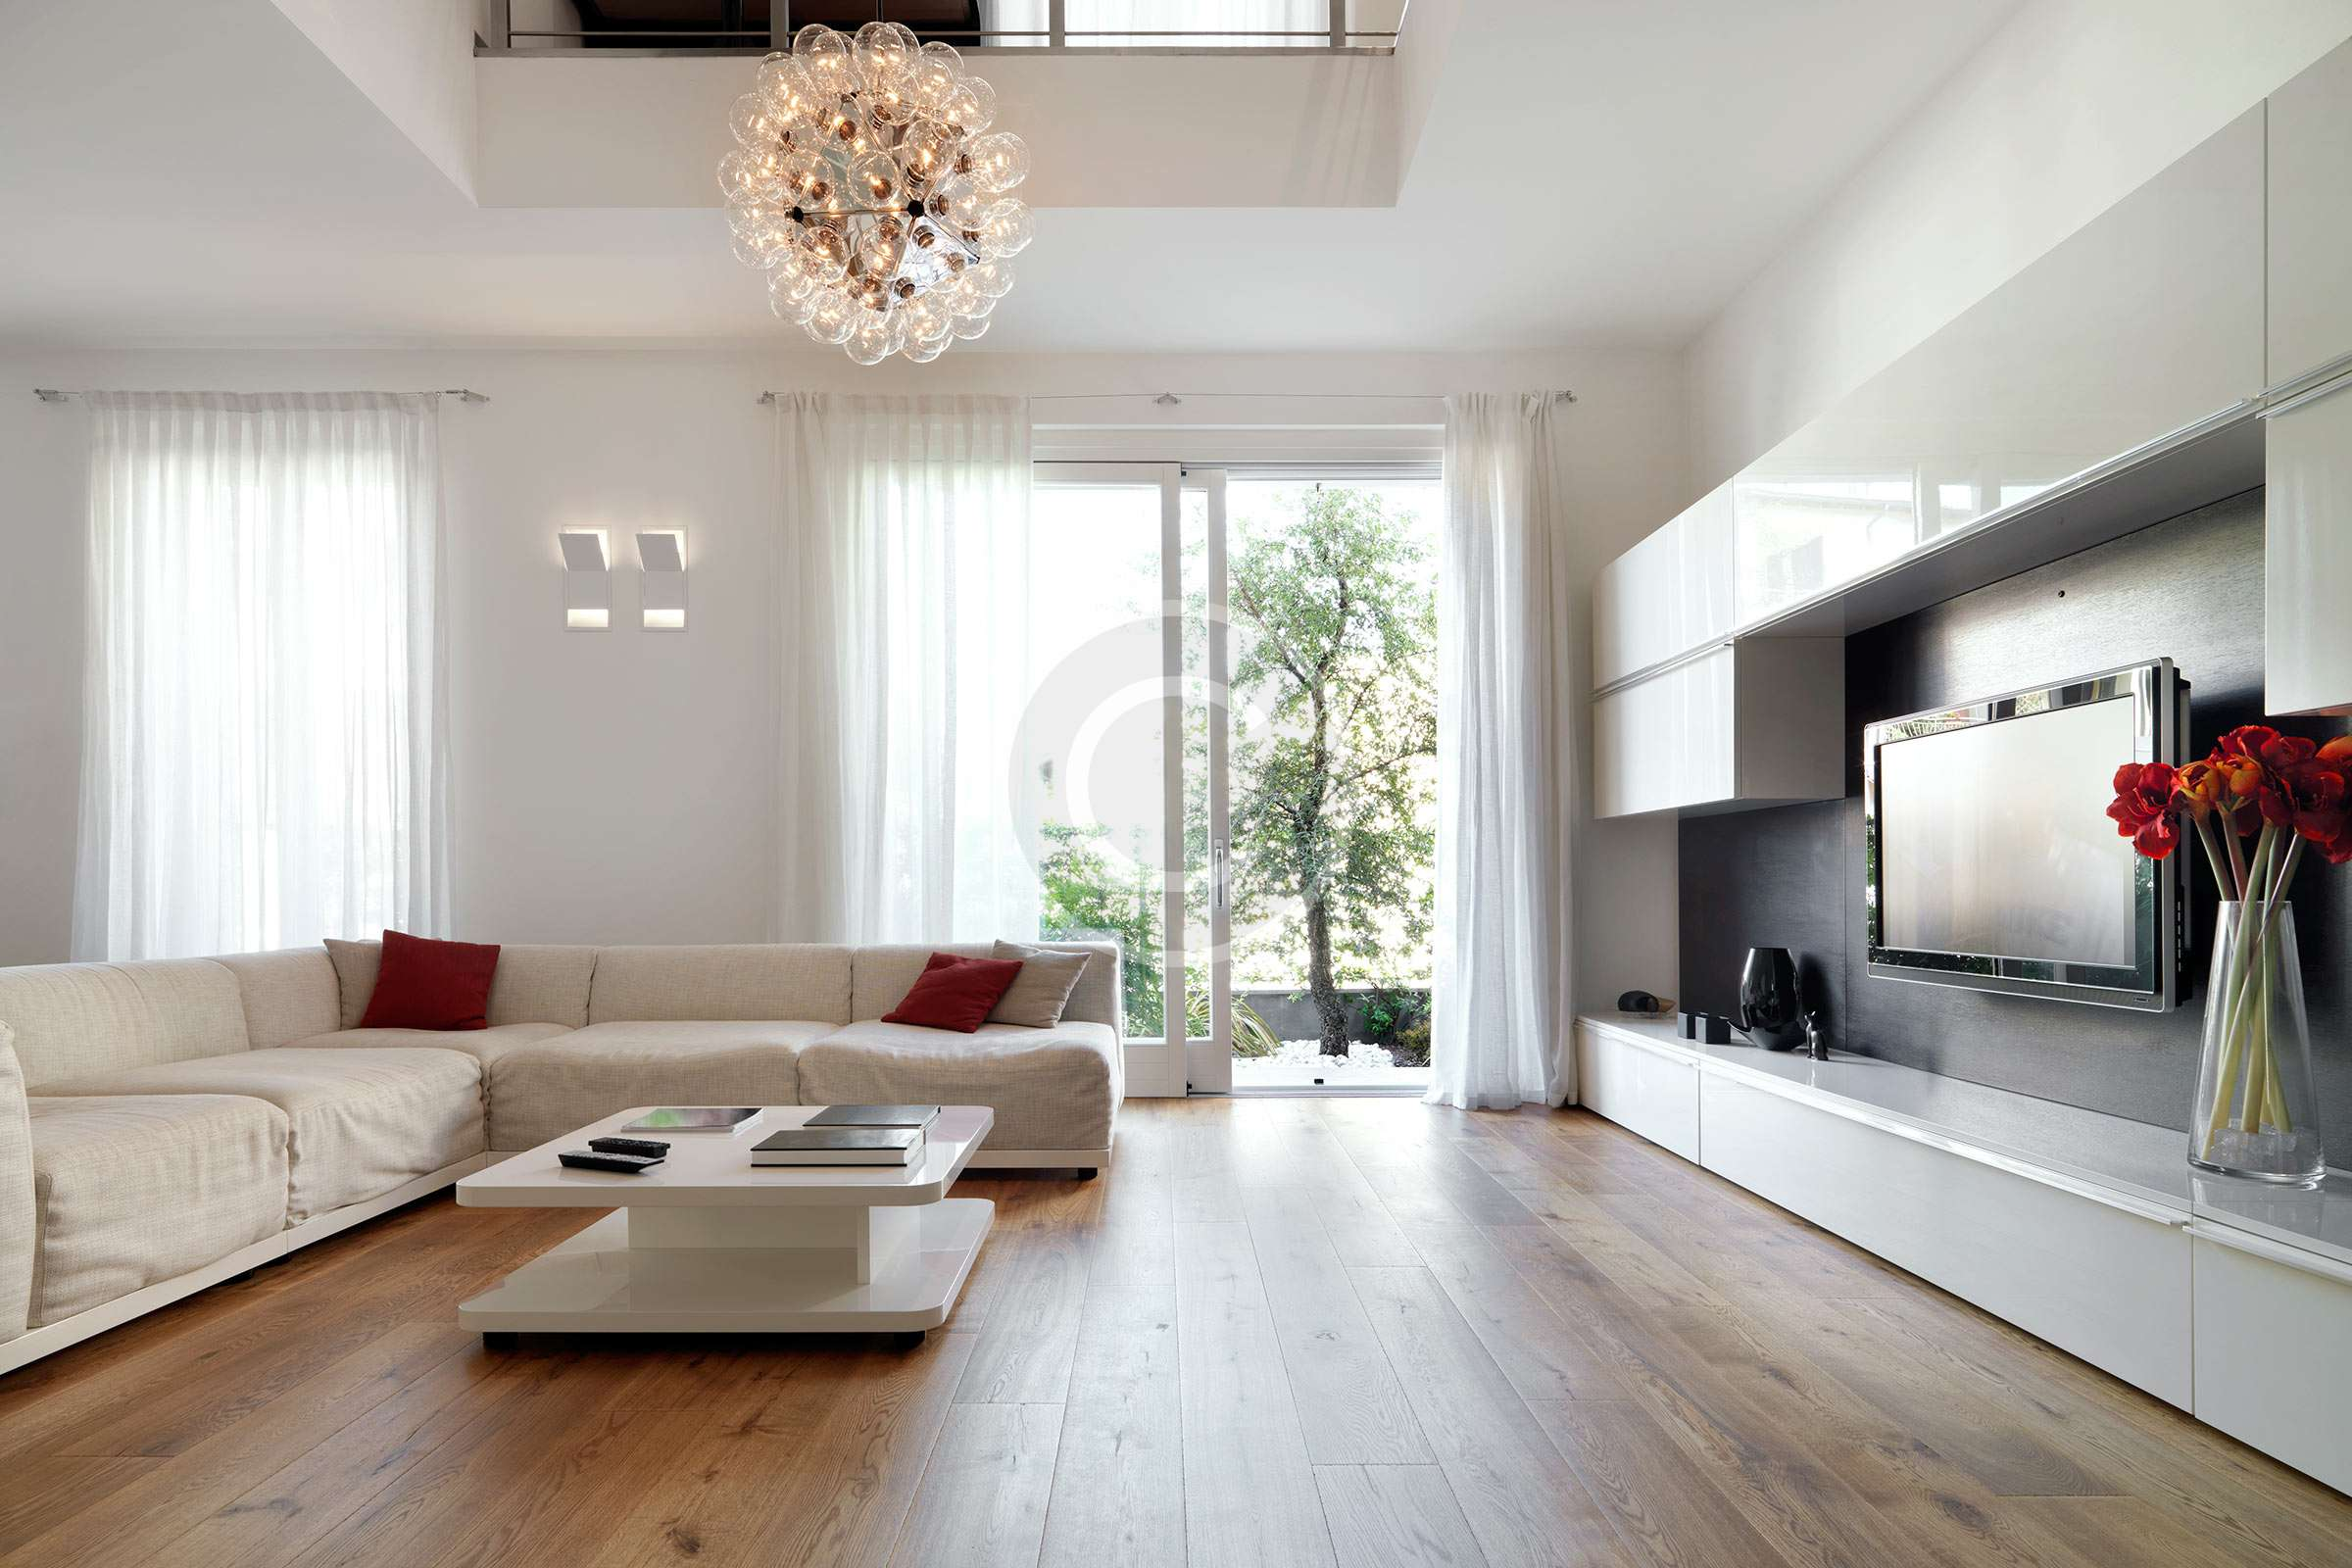 5 Ways to Maximise Your Home's Natural Light